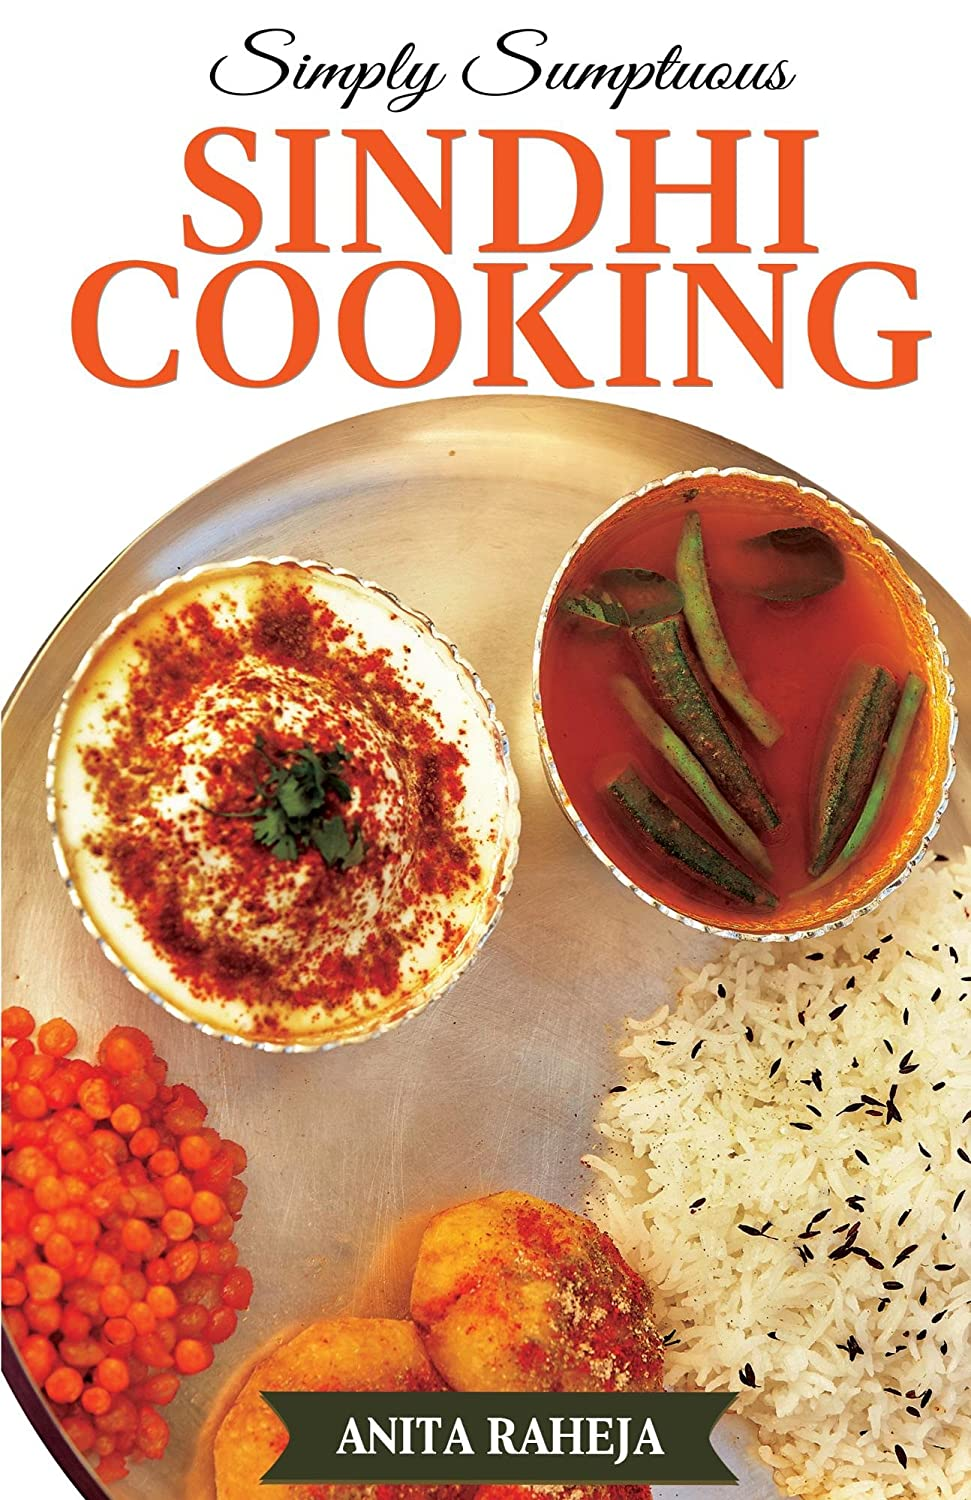 Simply Sumptuous Sindhi Cooking (English Edition)